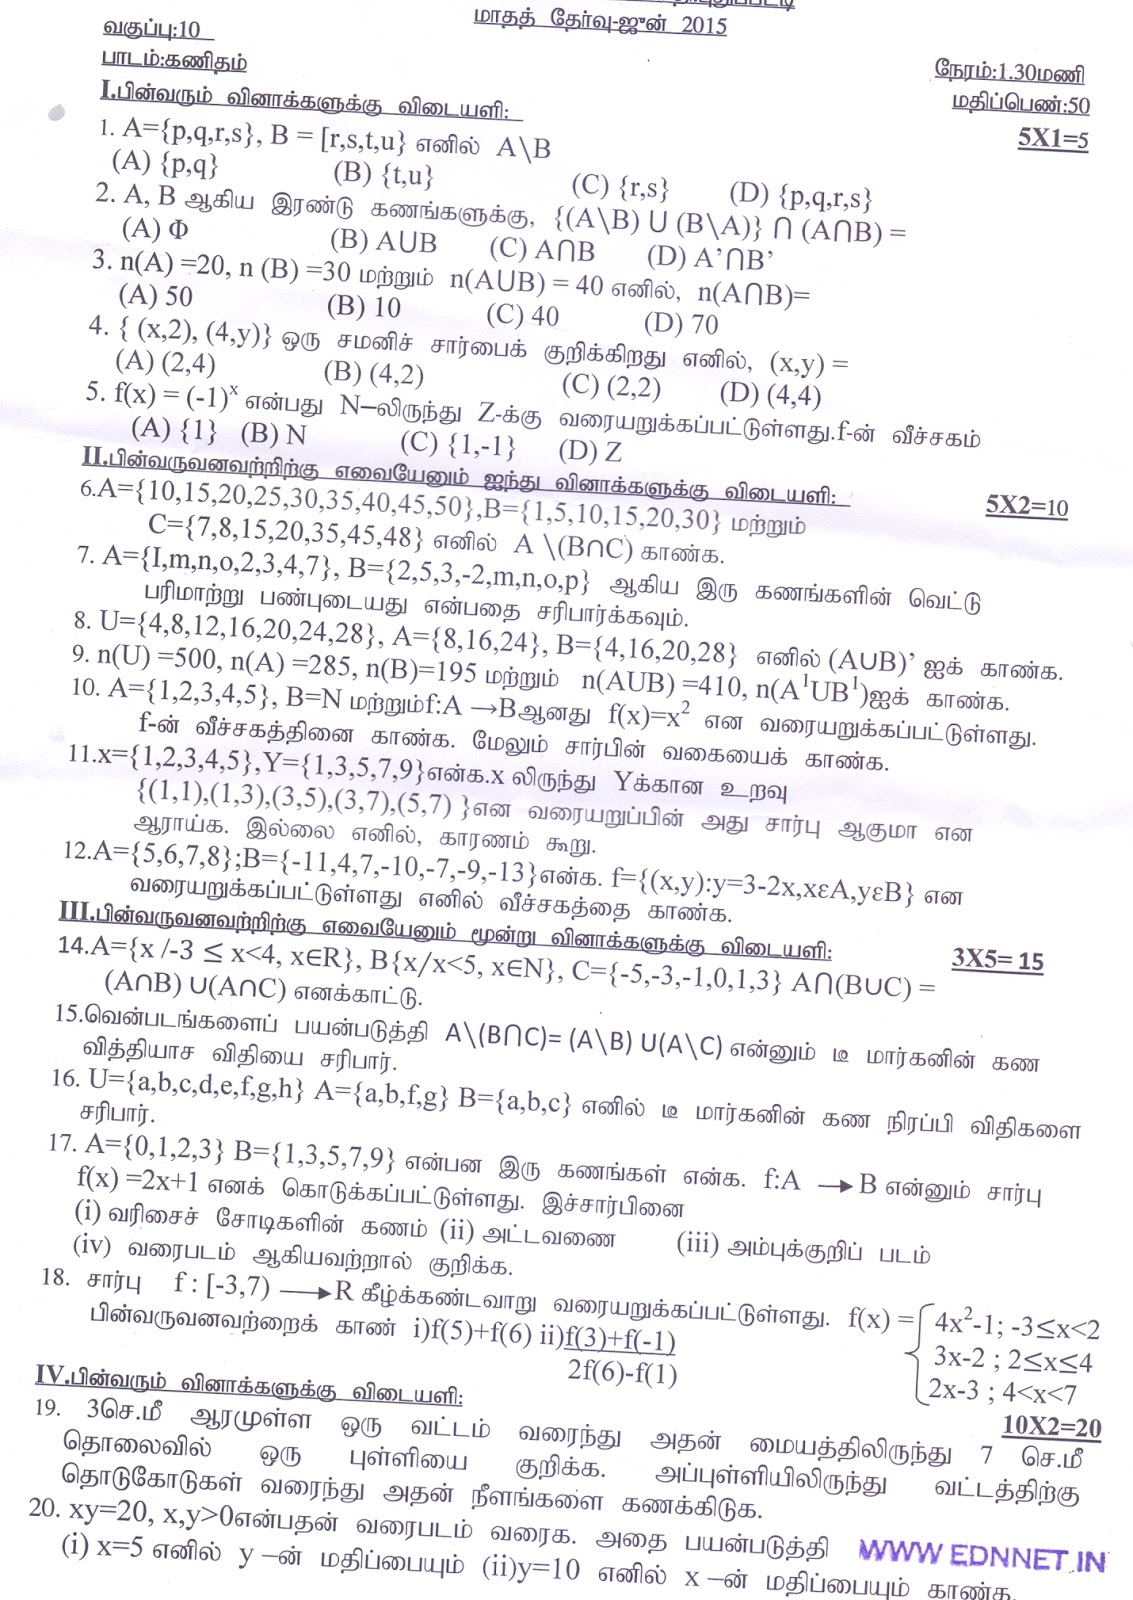 SSLC MATHS T/M JUNE MONTHLY TEST MODEL QUESTION PAPER